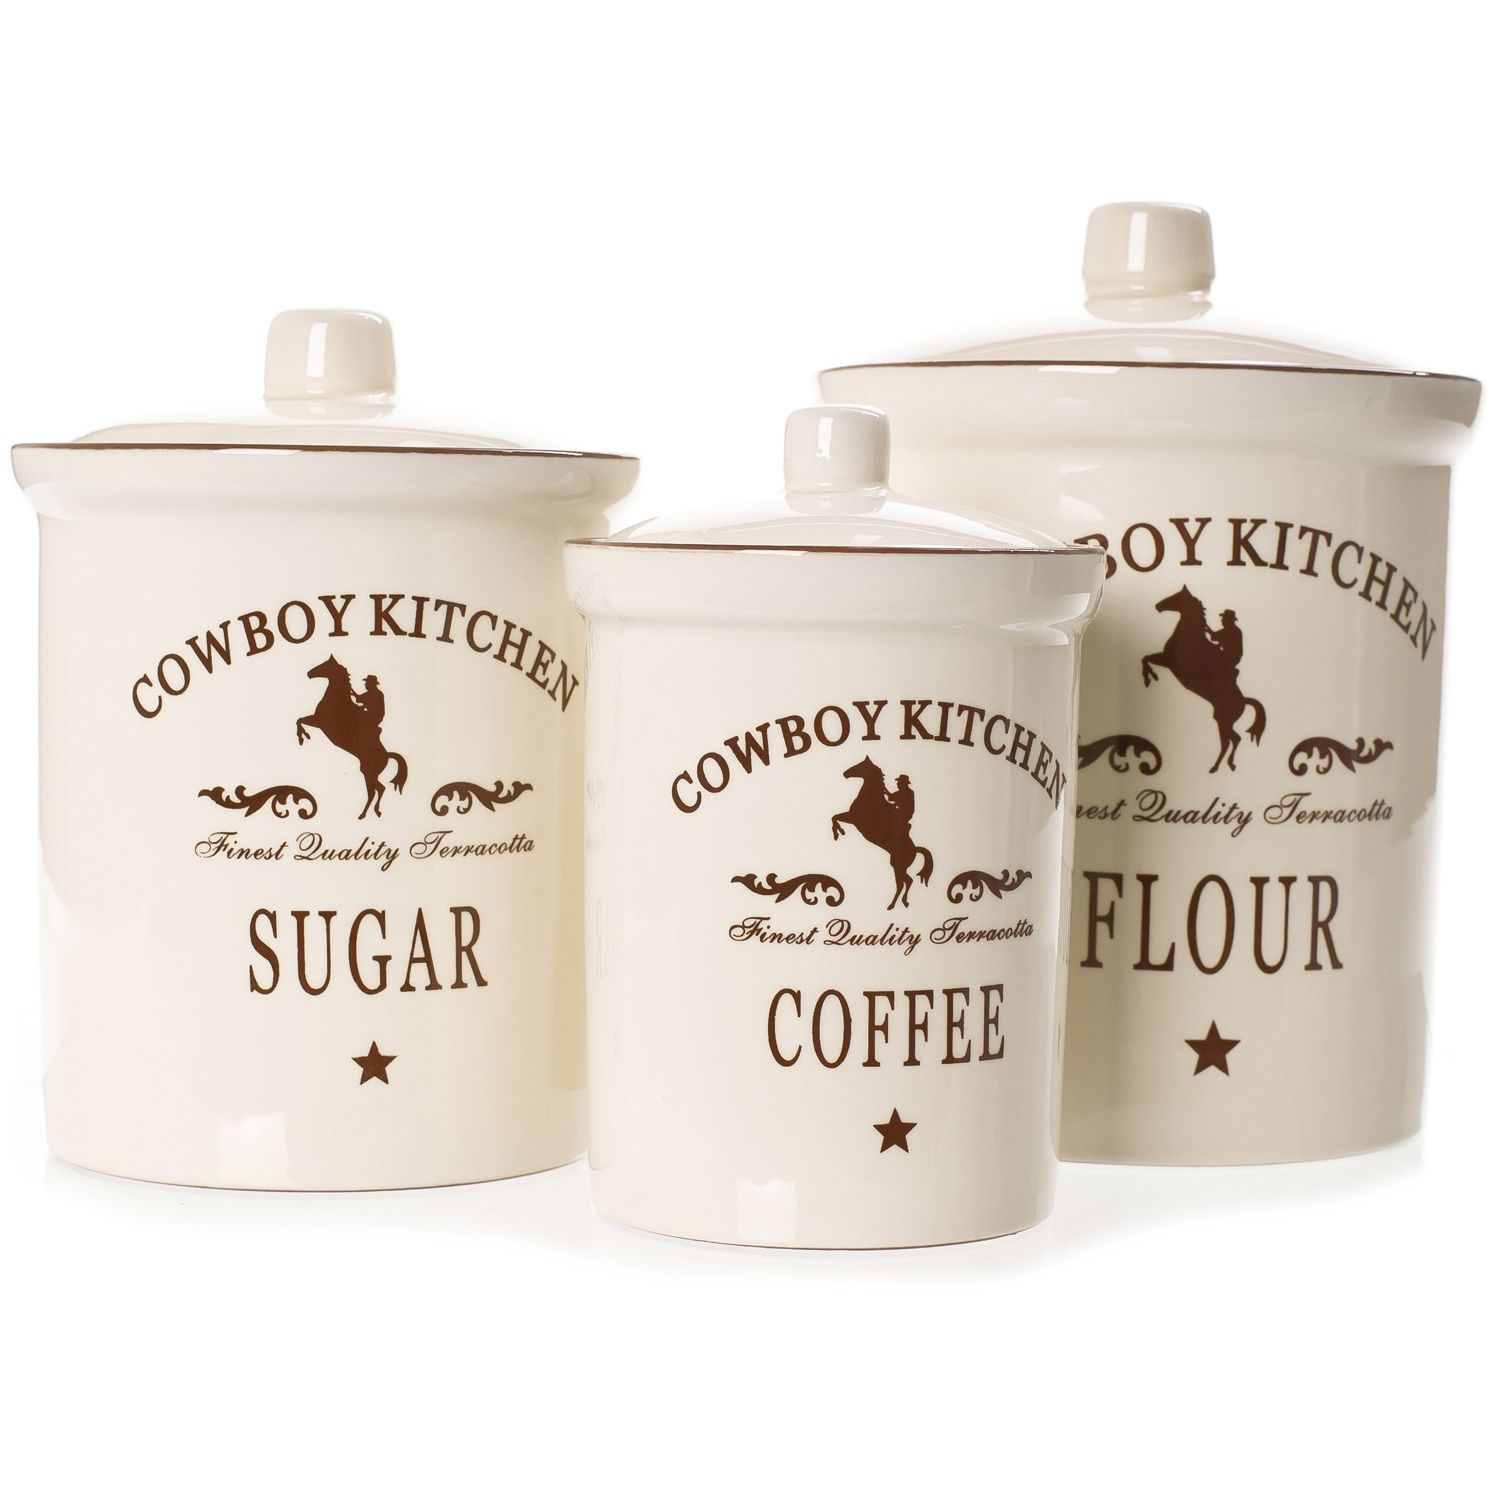 Cowboy Kitchen Canister Sets| | For my Home | Pinterest | Kitchen ...